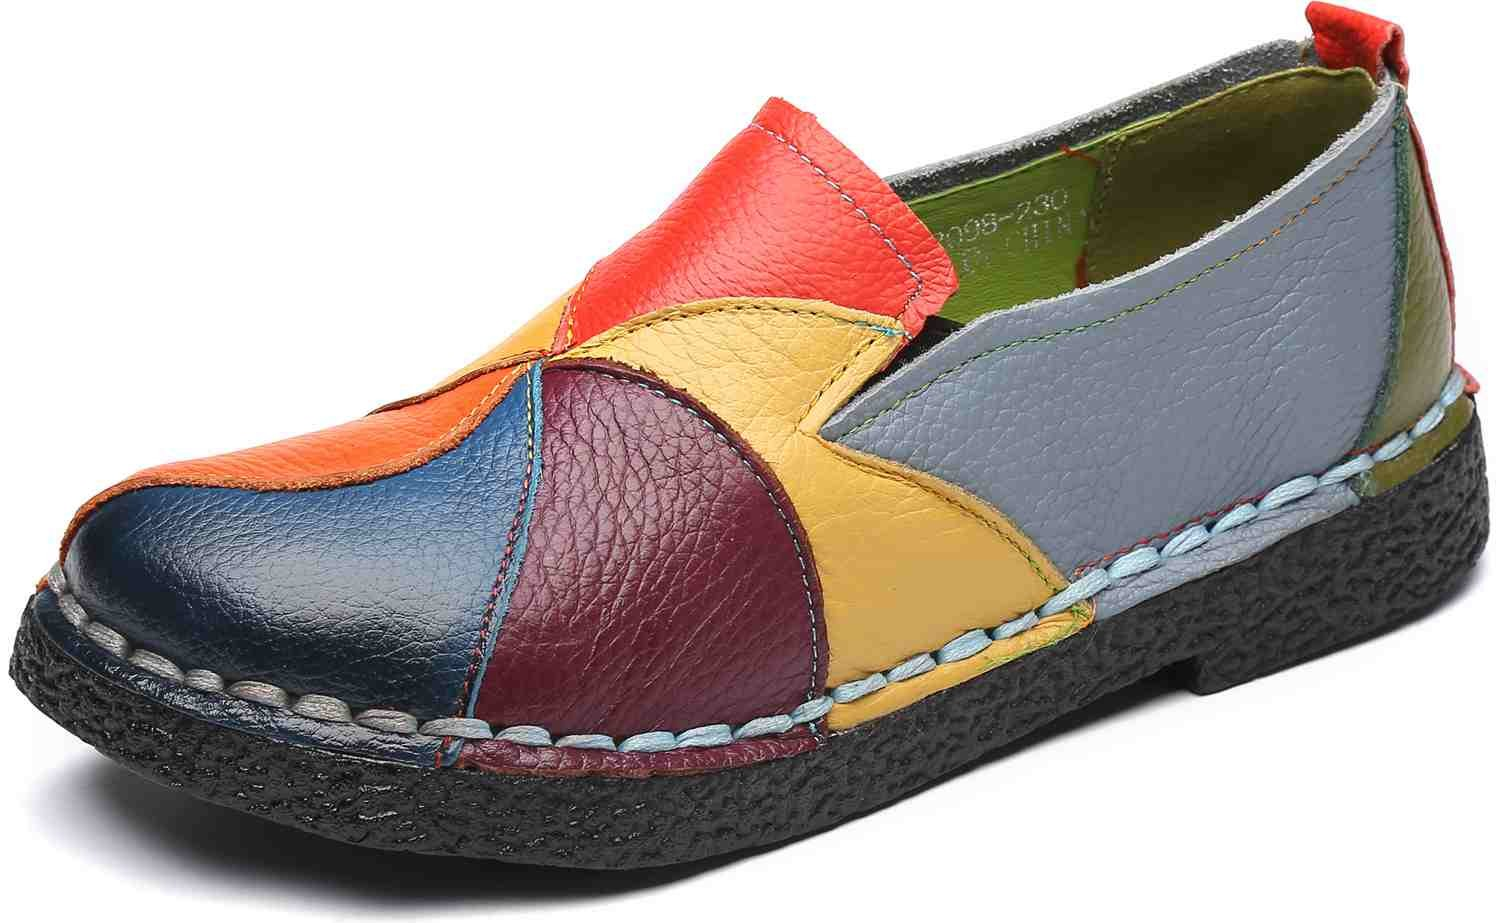 WENKOUBAN Women's Flats Supple Leather Moccasin Ladies Comfy Slip On Loafers 7 Yellow